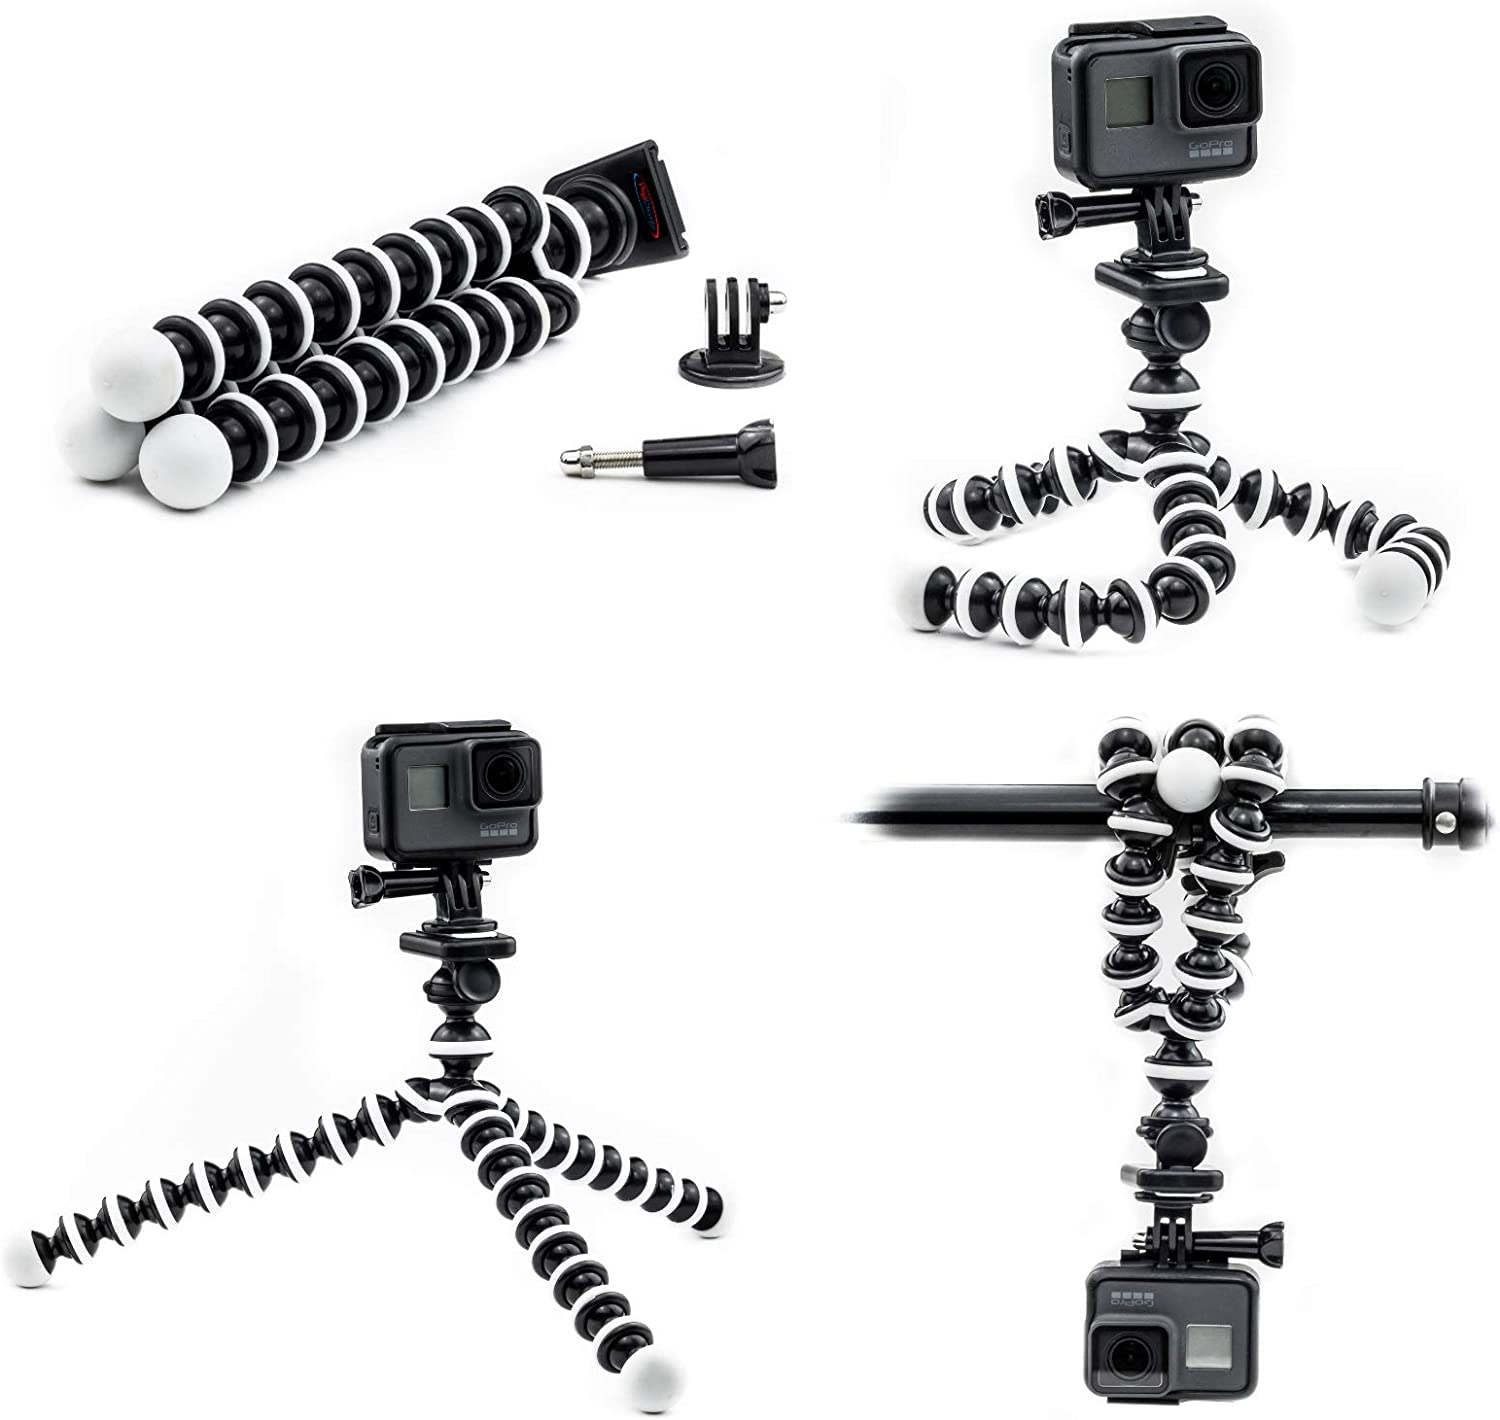 Suitable for SLR Multi-Camera Multi-Function Anchor Network Red Video Triangle Bracket QOUP Camera Tripod 4-Legged Three-Way Rotating Disc Tilting Head